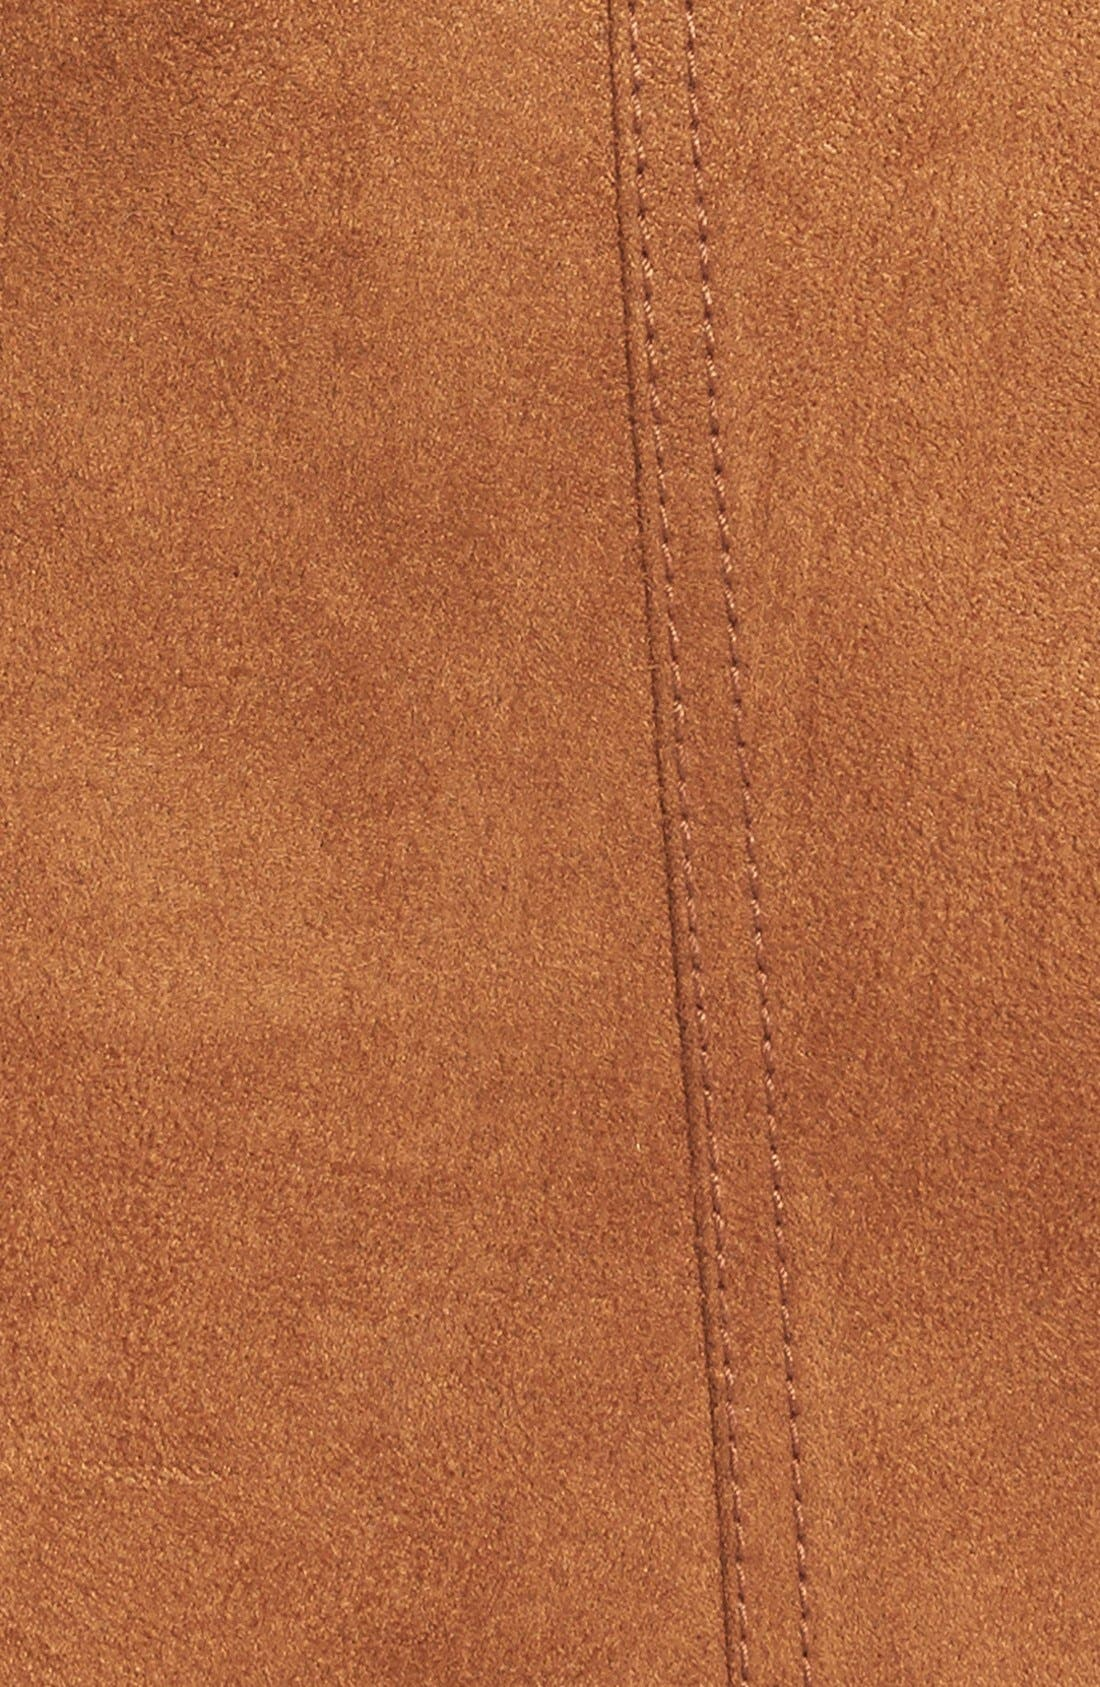 Faux Suede A-Line Miniskirt,                             Alternate thumbnail 4, color,                             Brown Toffee